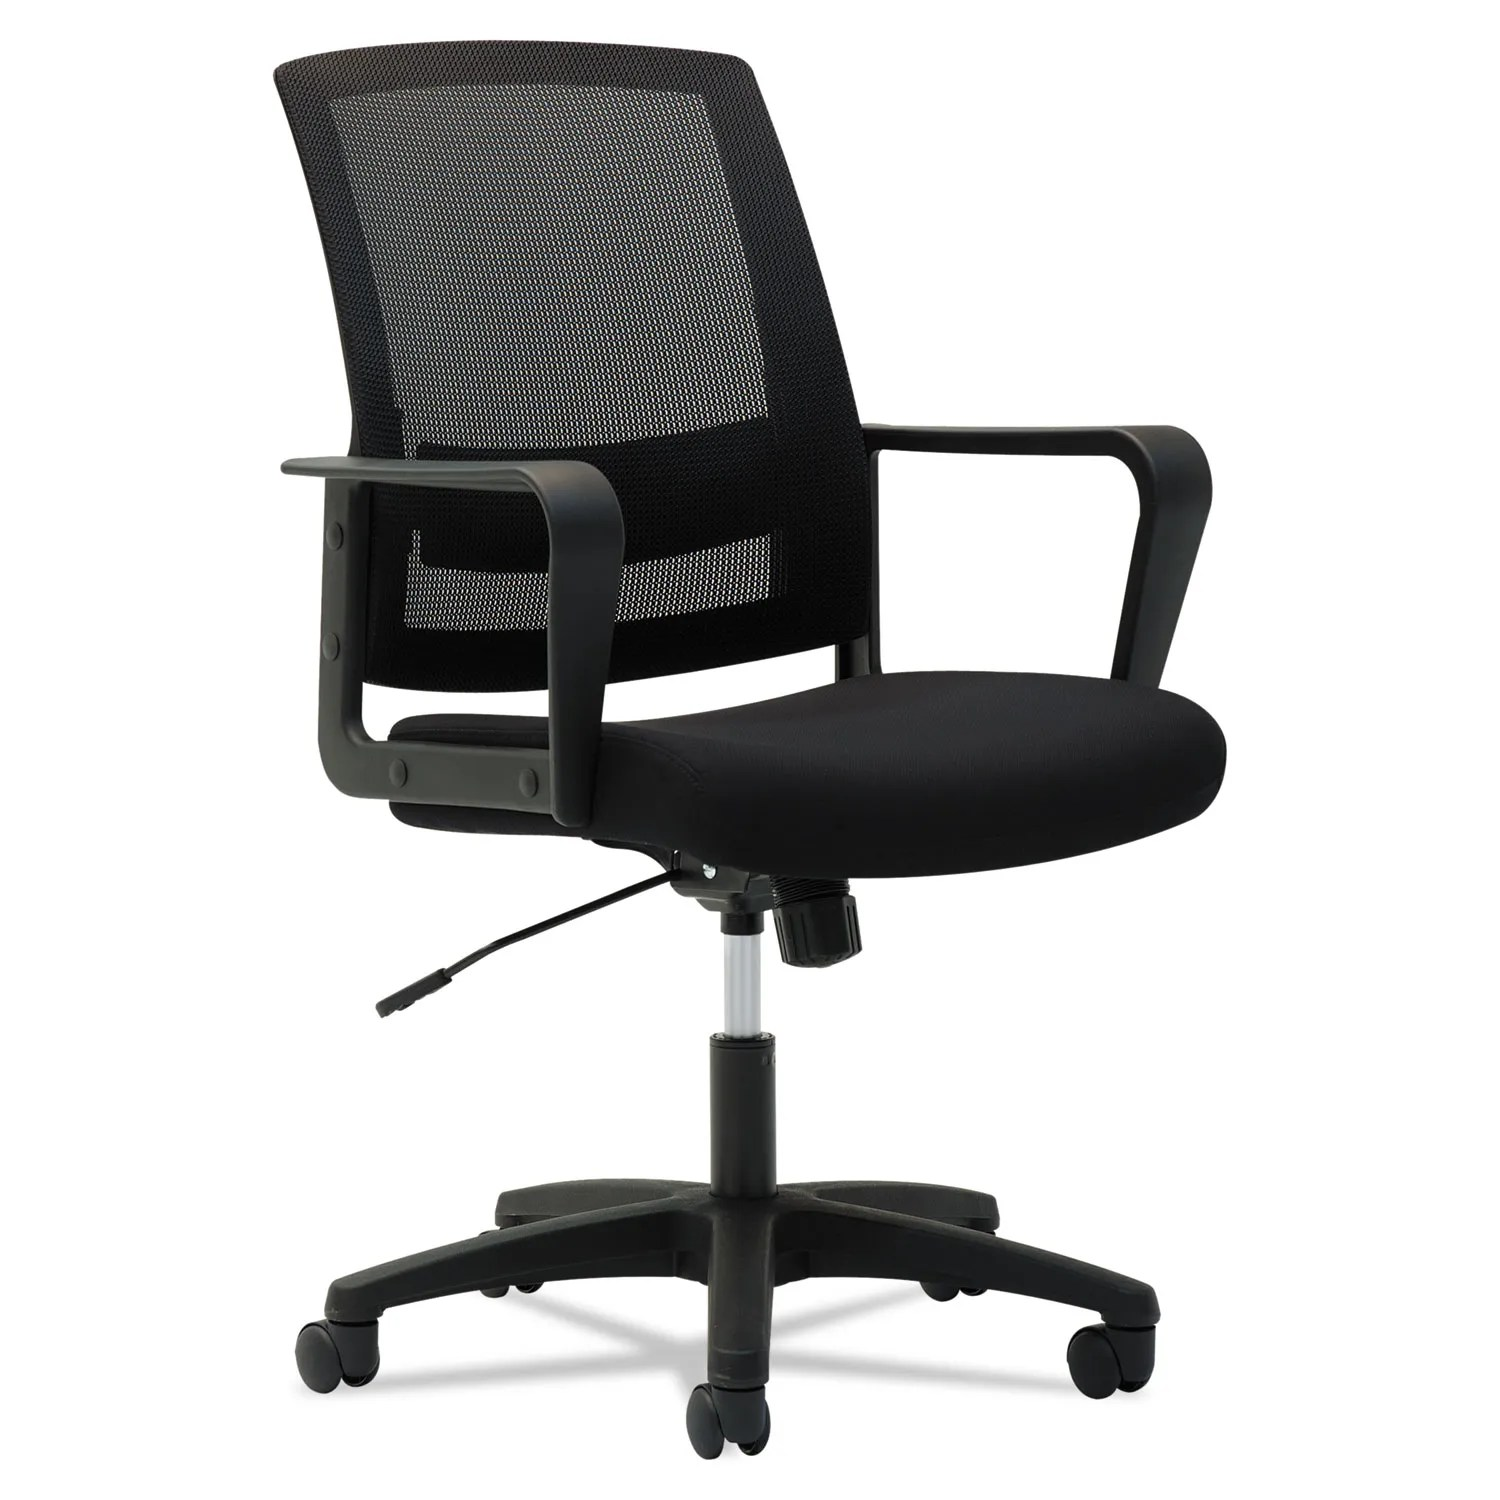 Mesh Mid Back Chair Supports Up To 225 Lbs Black Seat Black Back Black Base